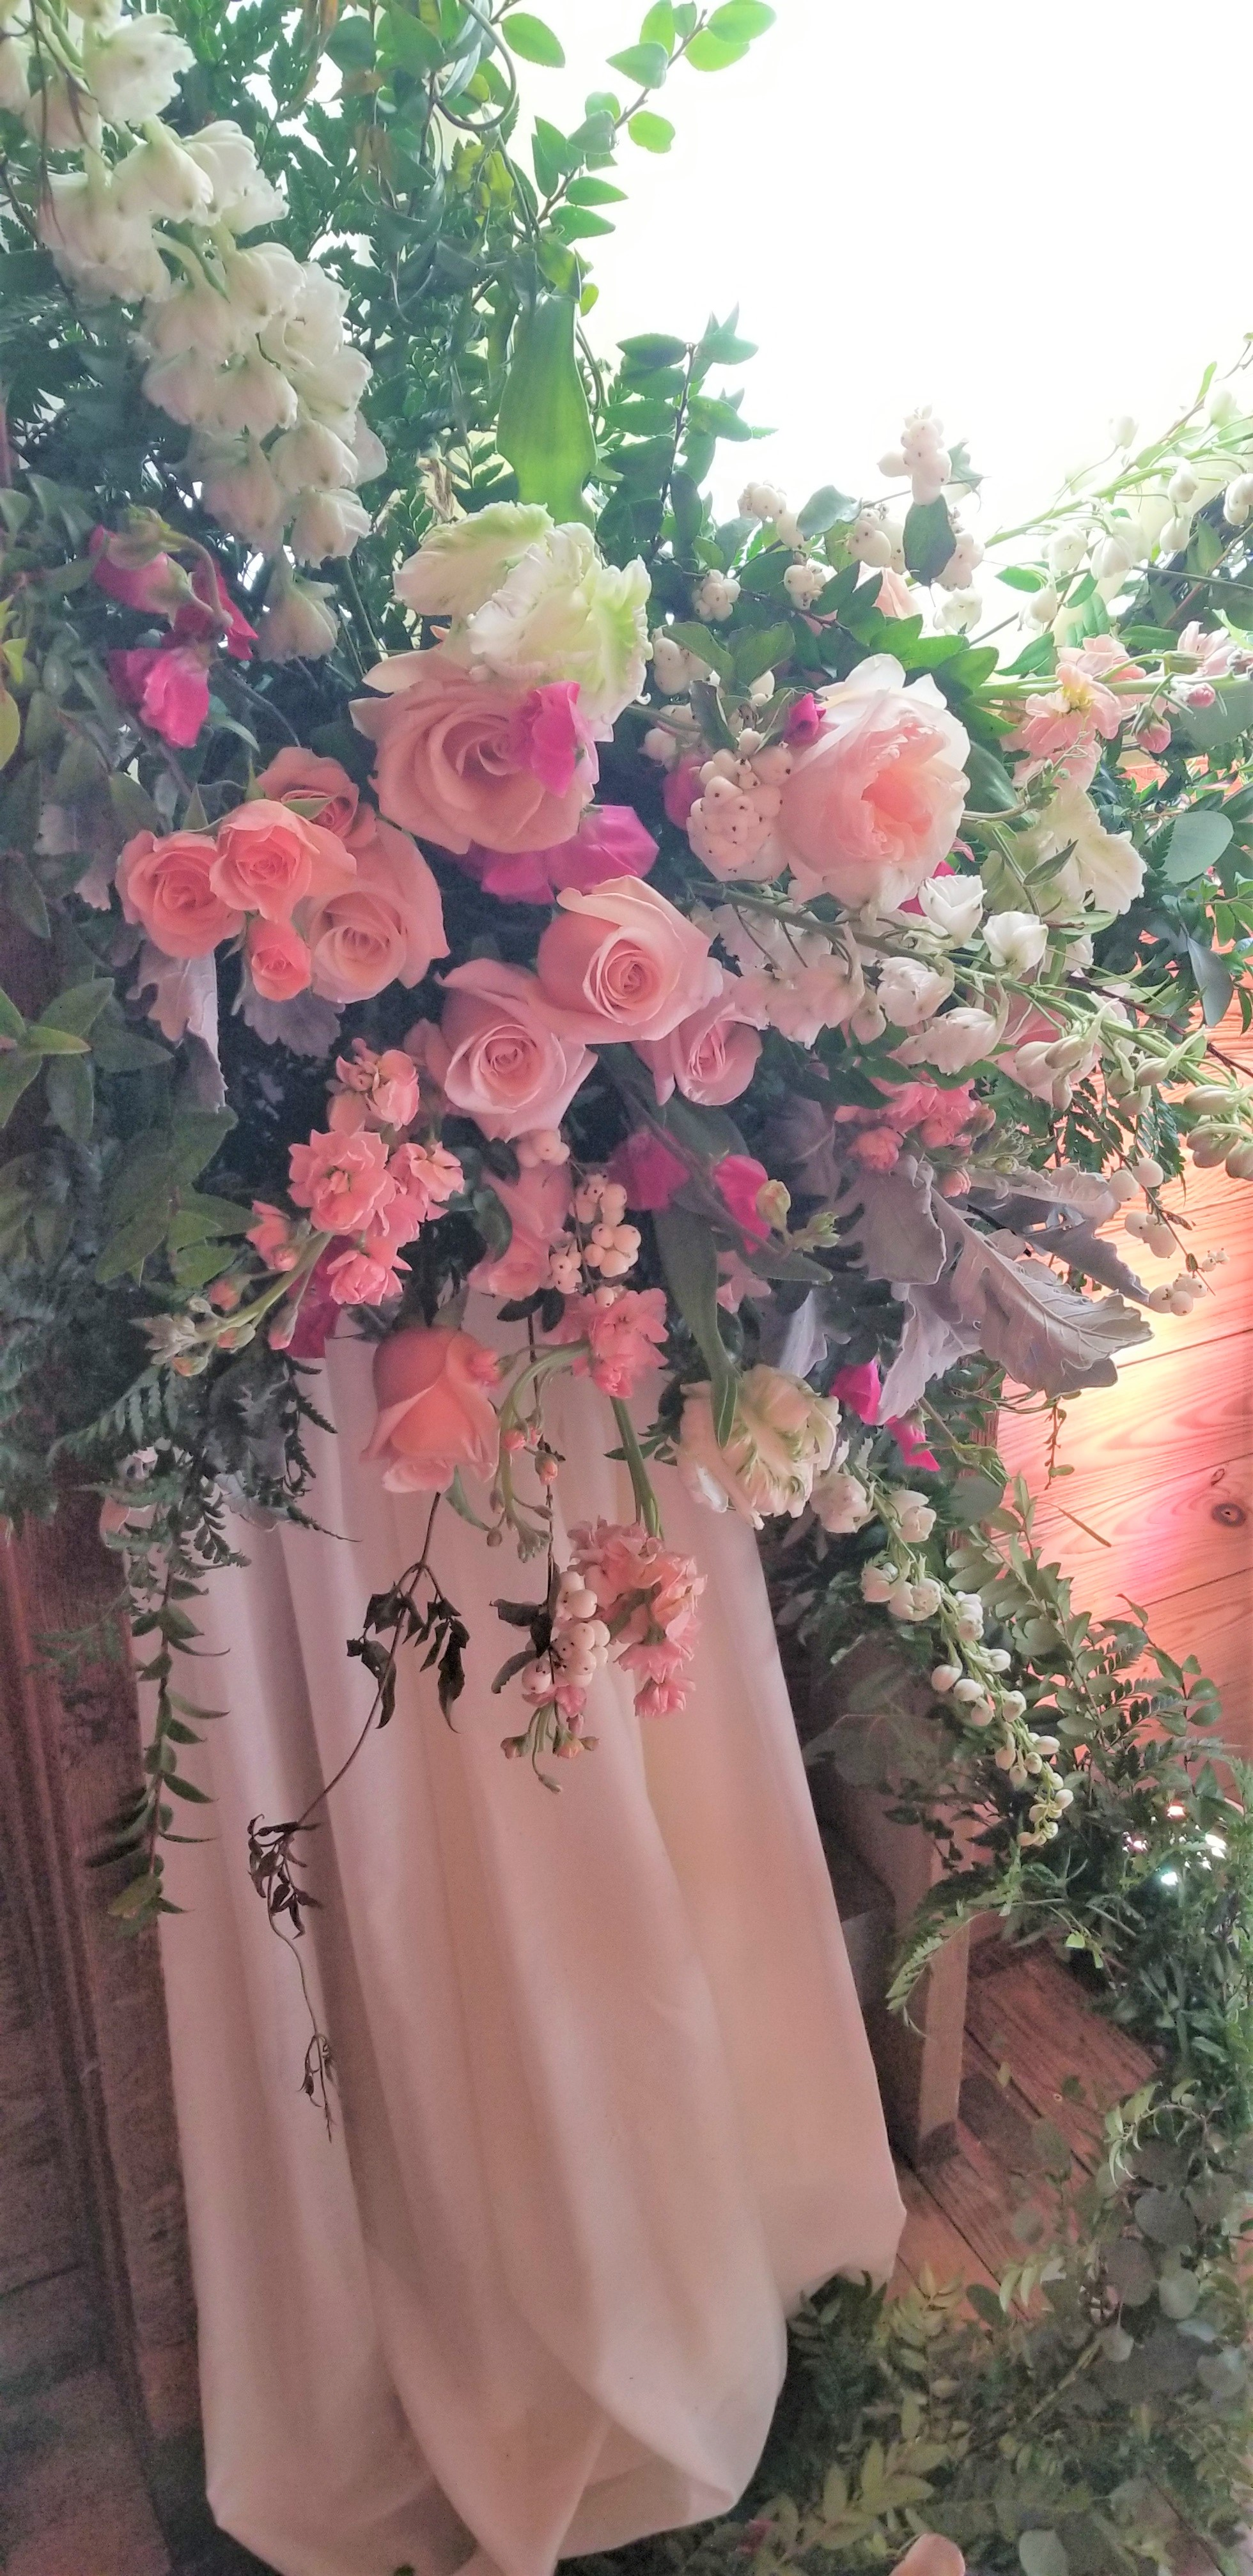 Floral tie-backs with white linen drapes and lush vines.